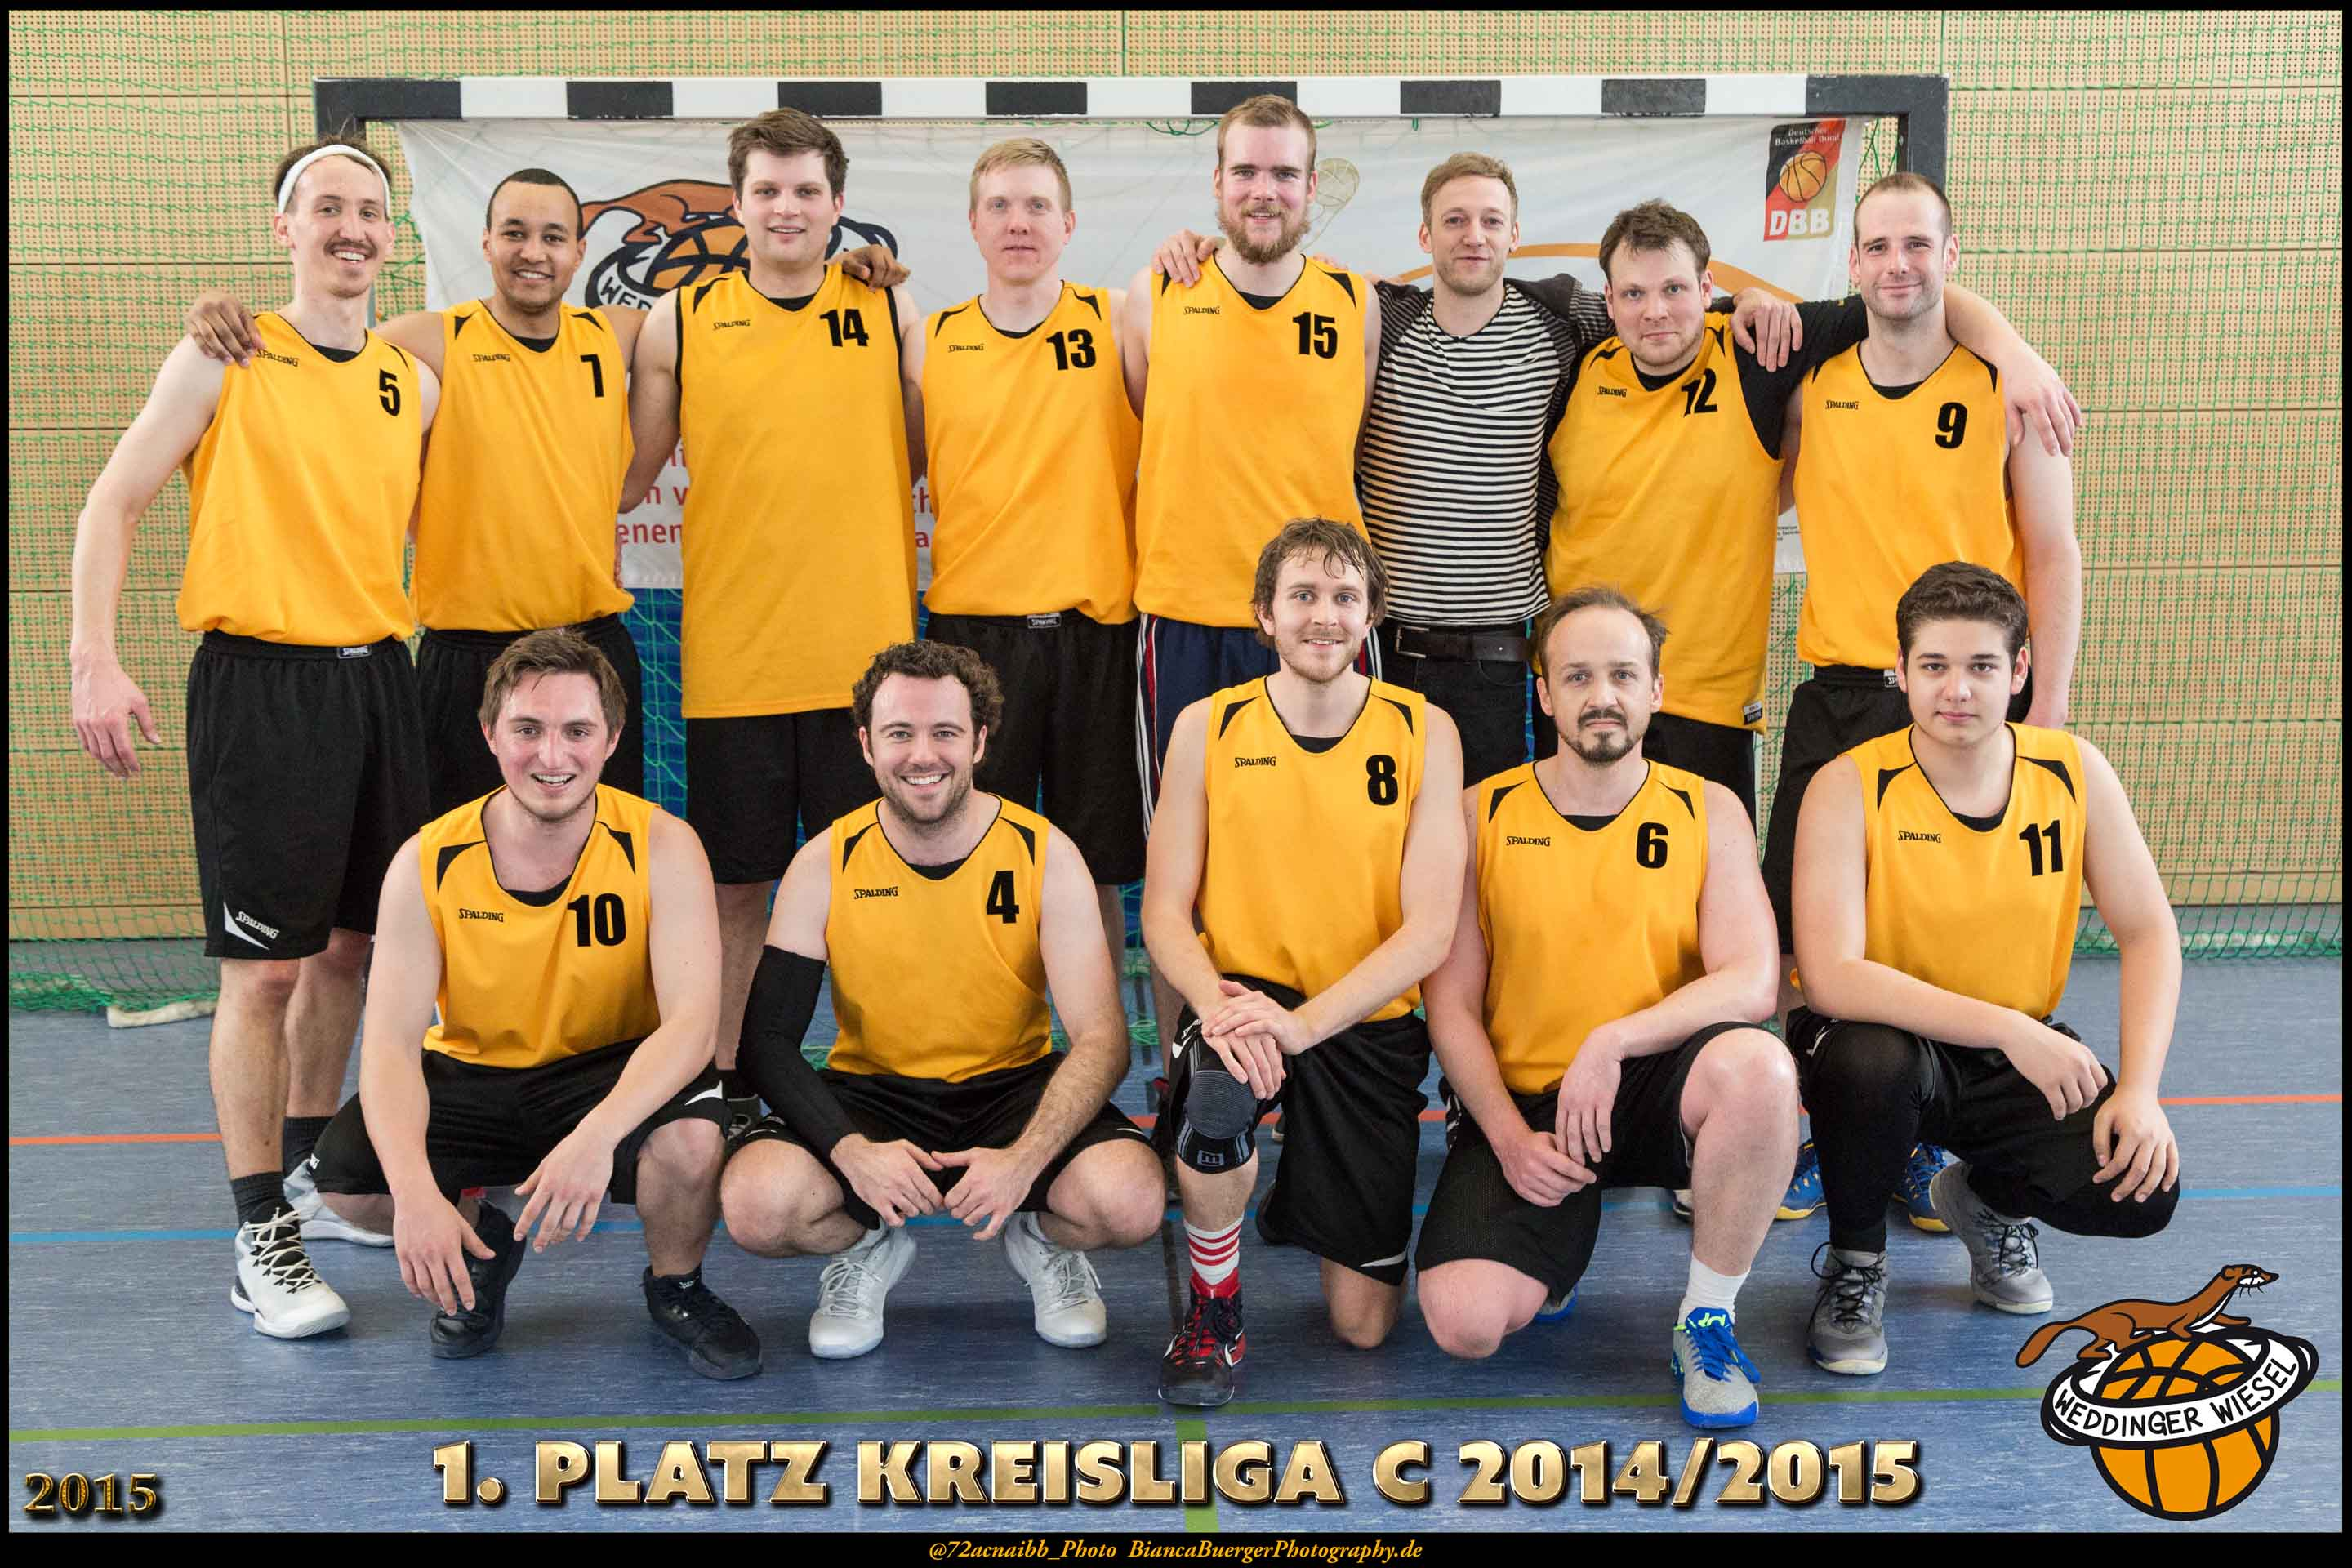 2. Herren Weddinger Wiesel vs City Basket Berlin 2